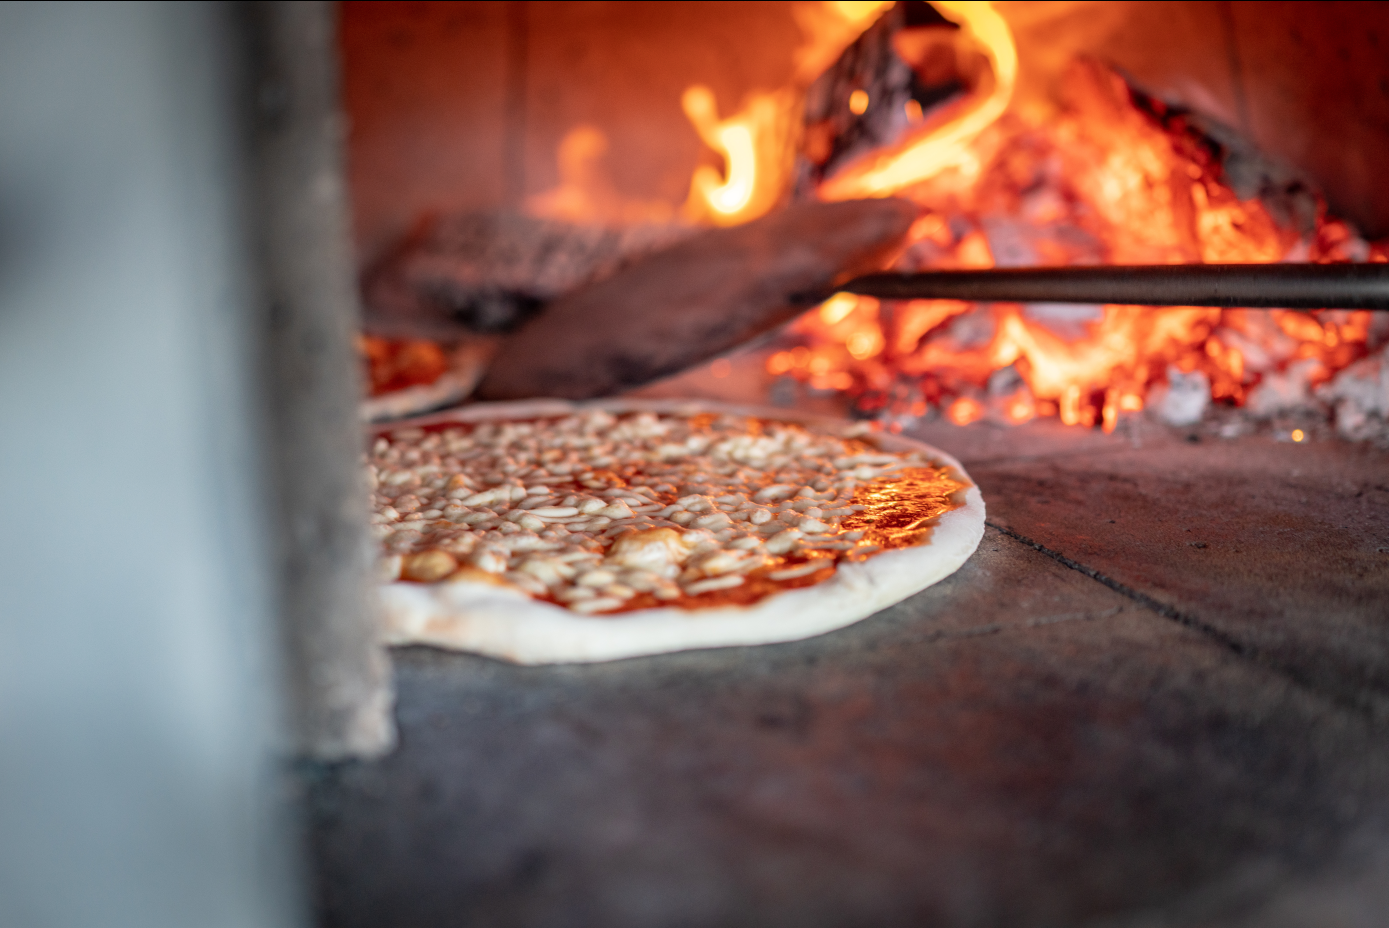 …and wood-fired pizza